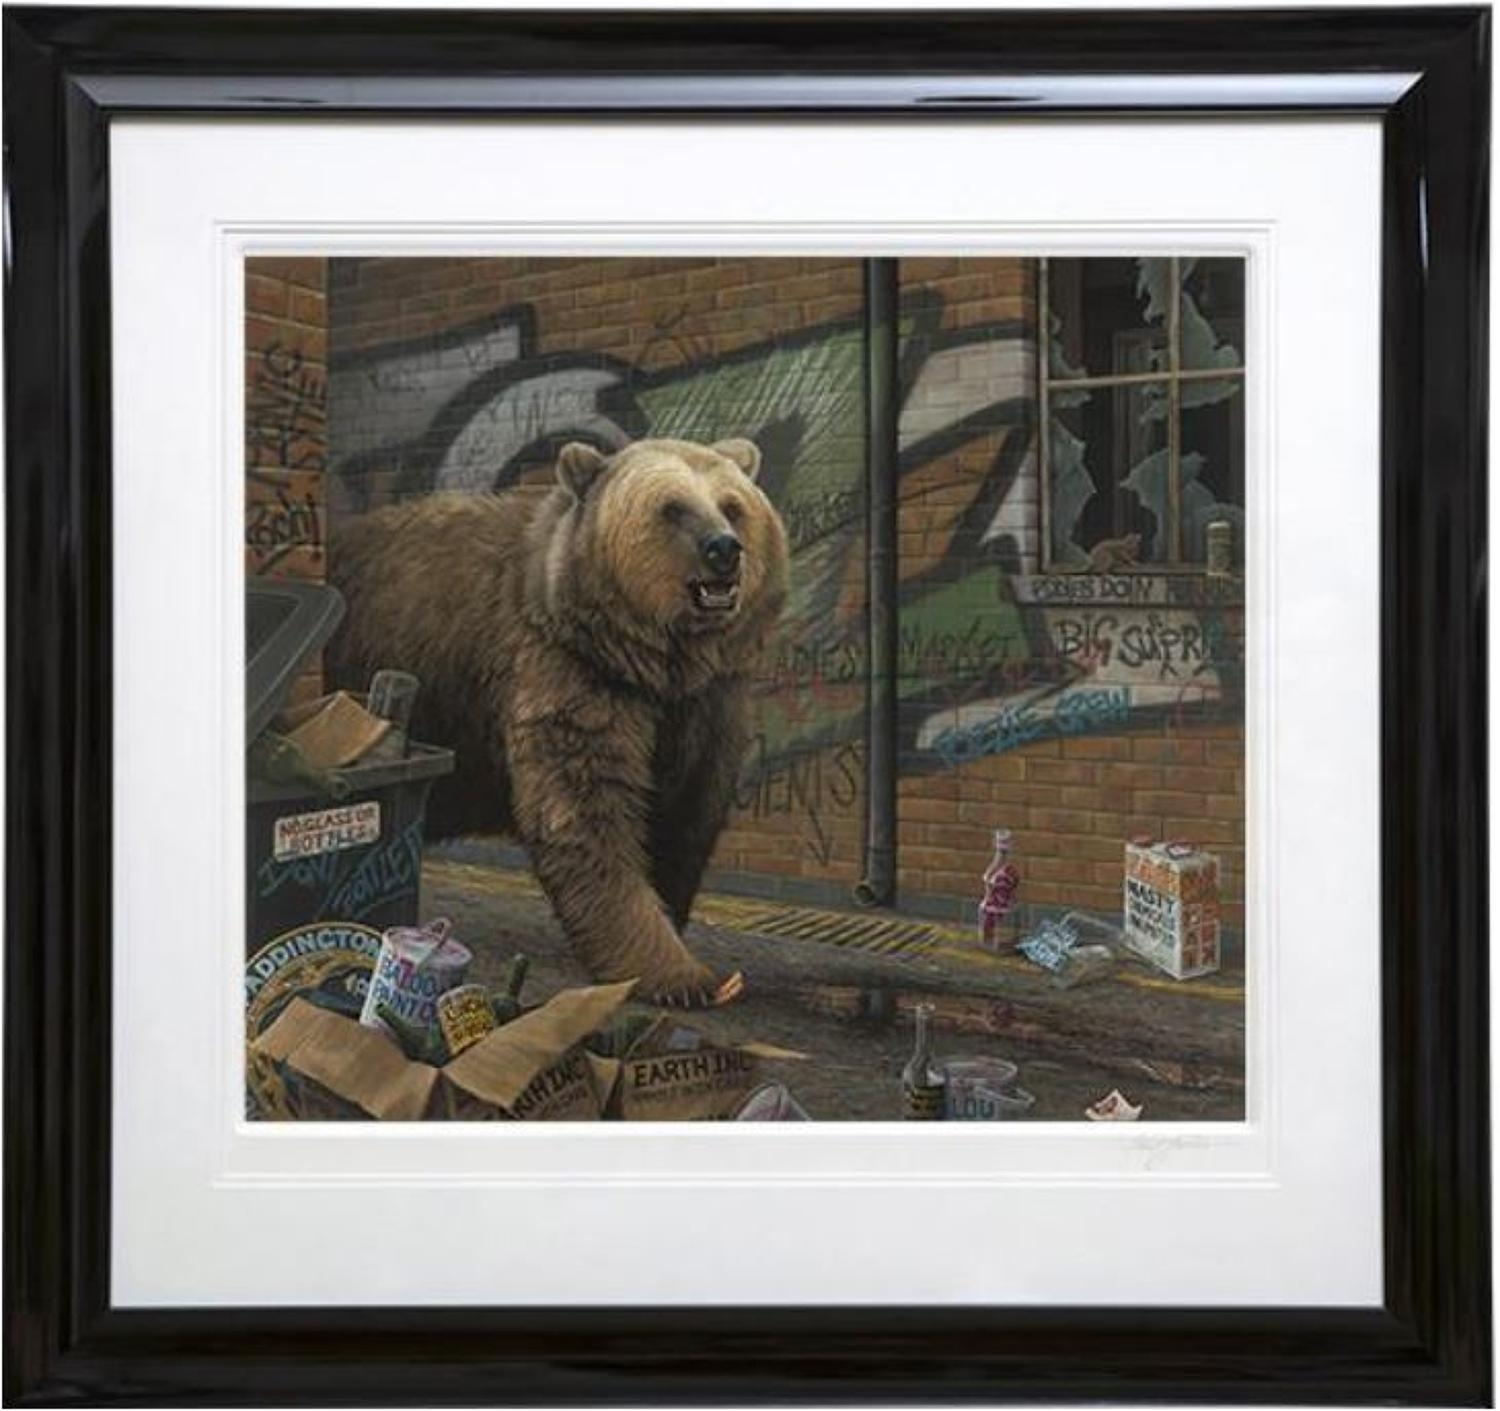 Grizzly by Paul James Framed Paper Edition